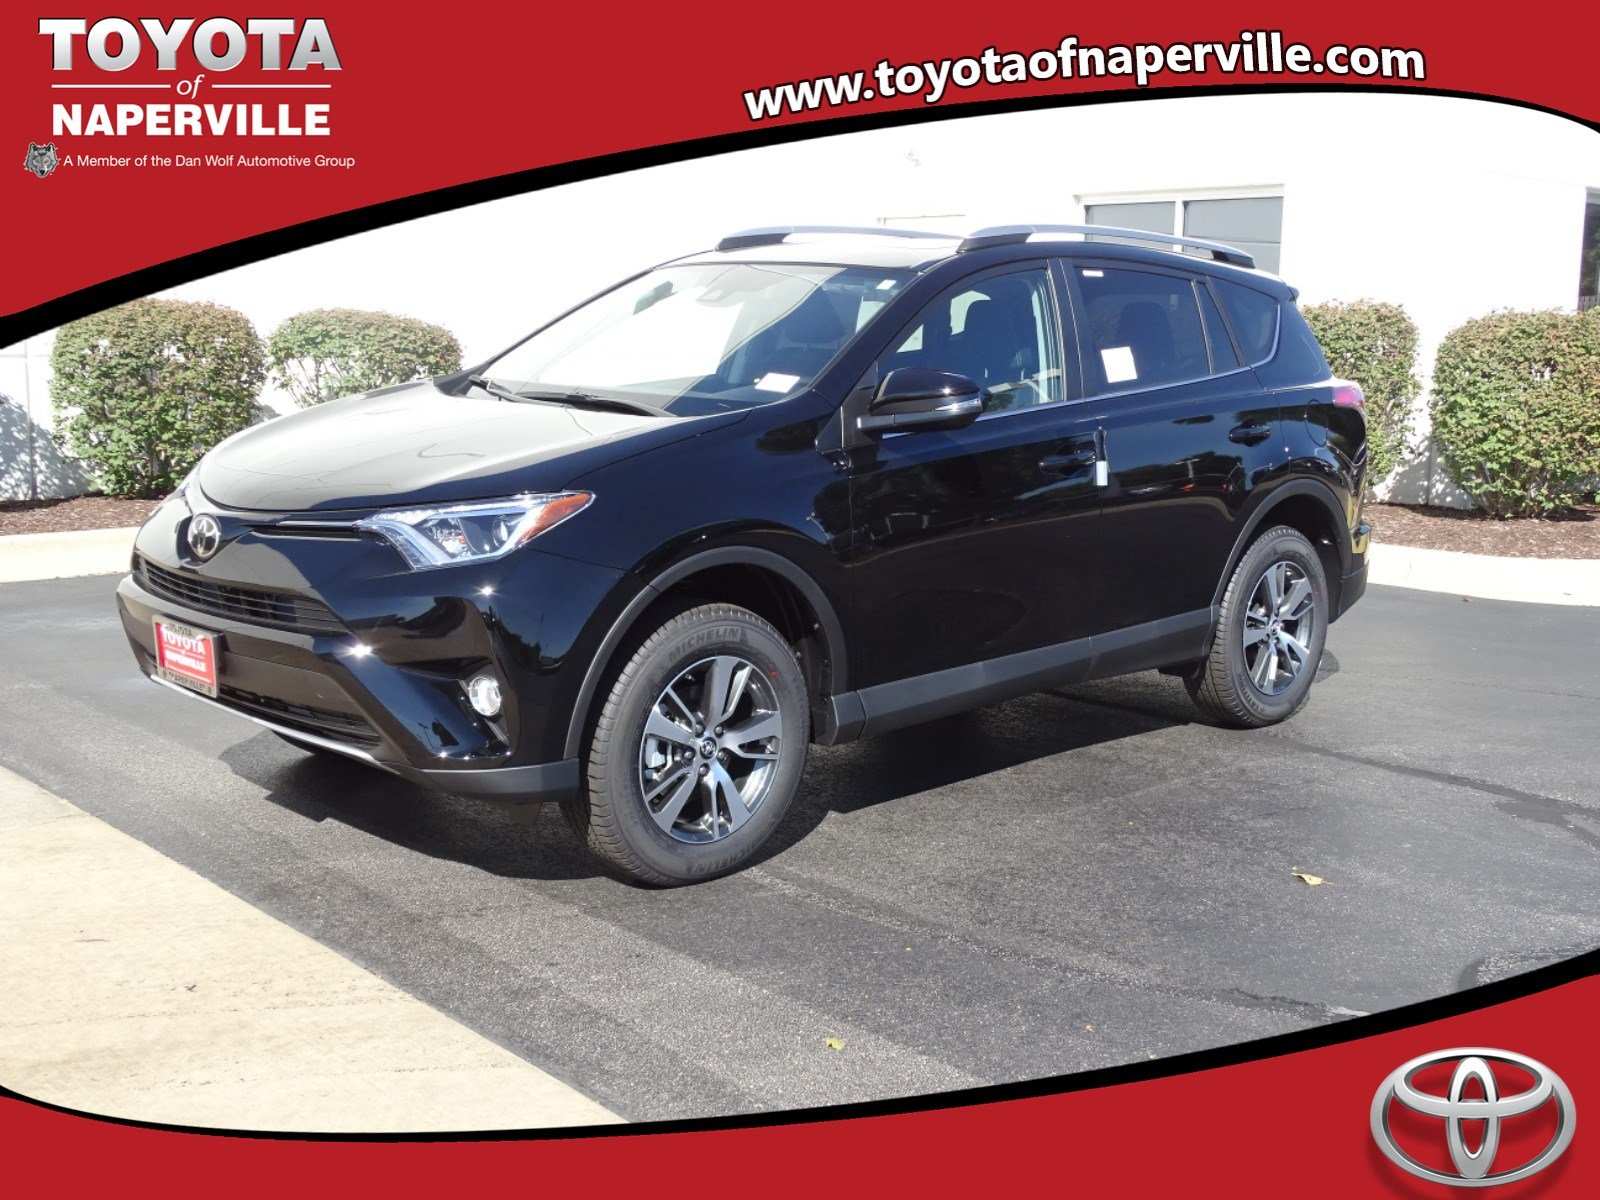 New 2018 Toyota Rav4 Xle 4d Sport Utility In Naperville T28388 Low Tire Pressure Warning Light